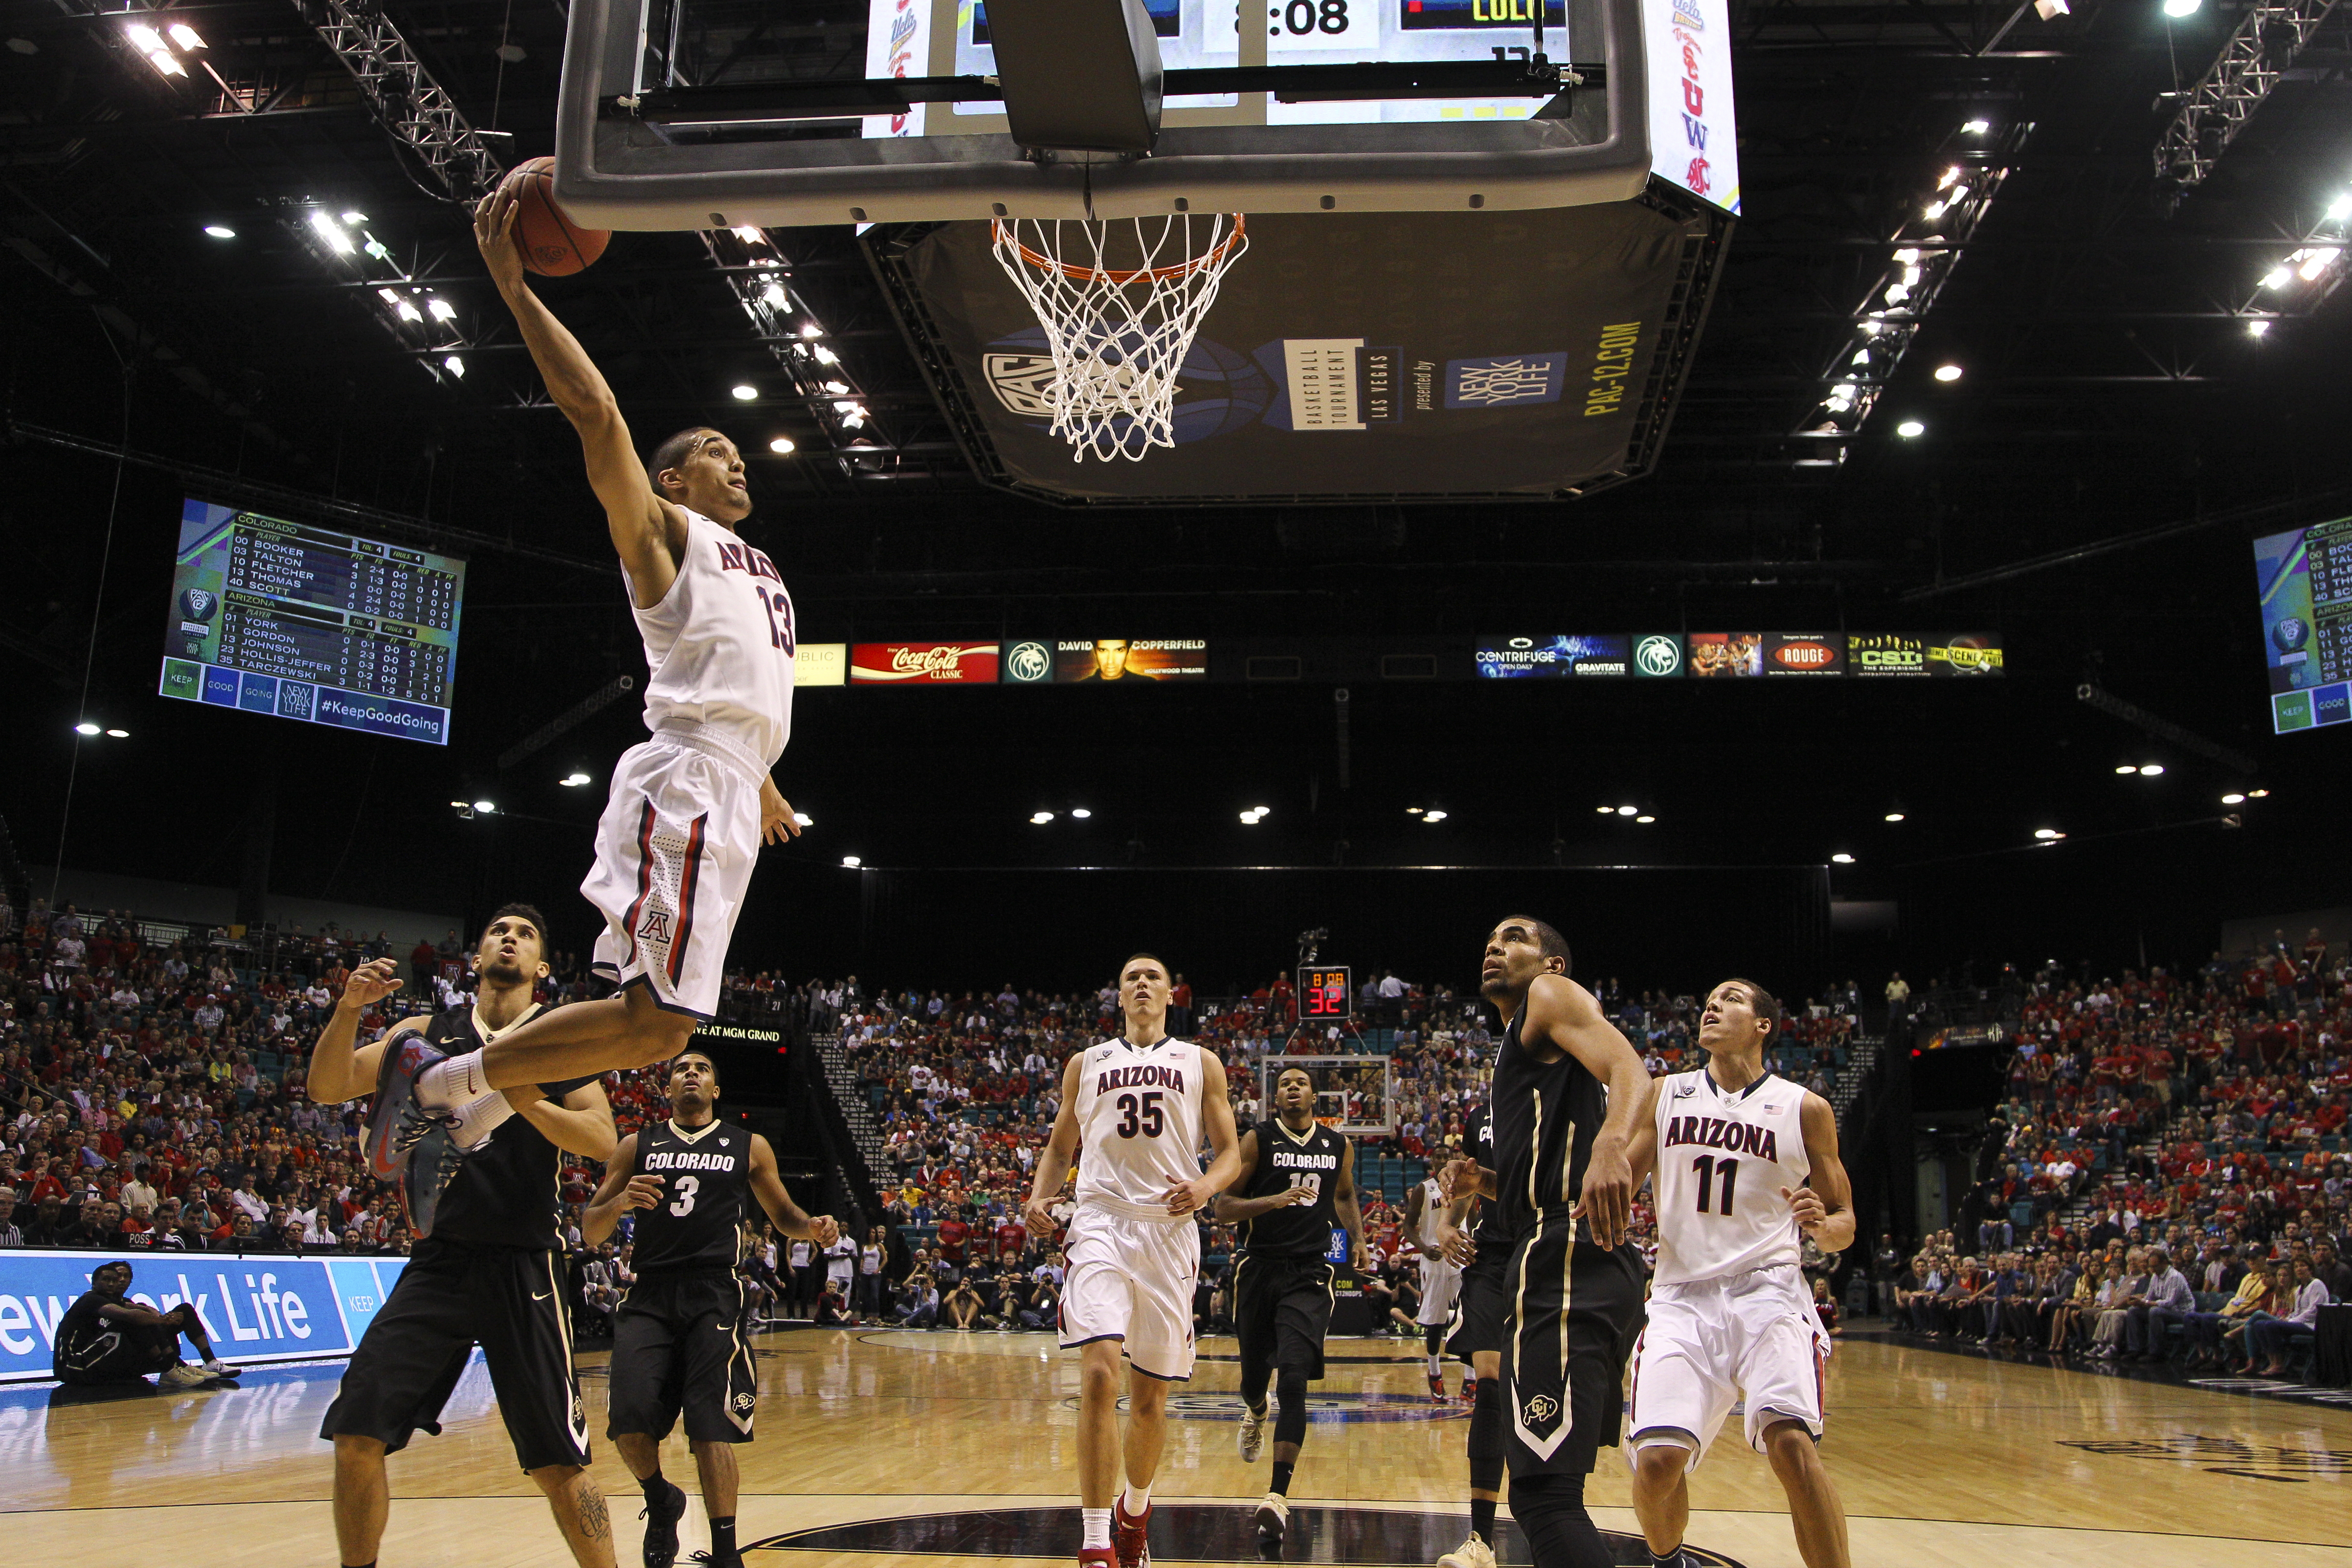 2014 Pac-12 Tournament bracket update: Arizona marches on